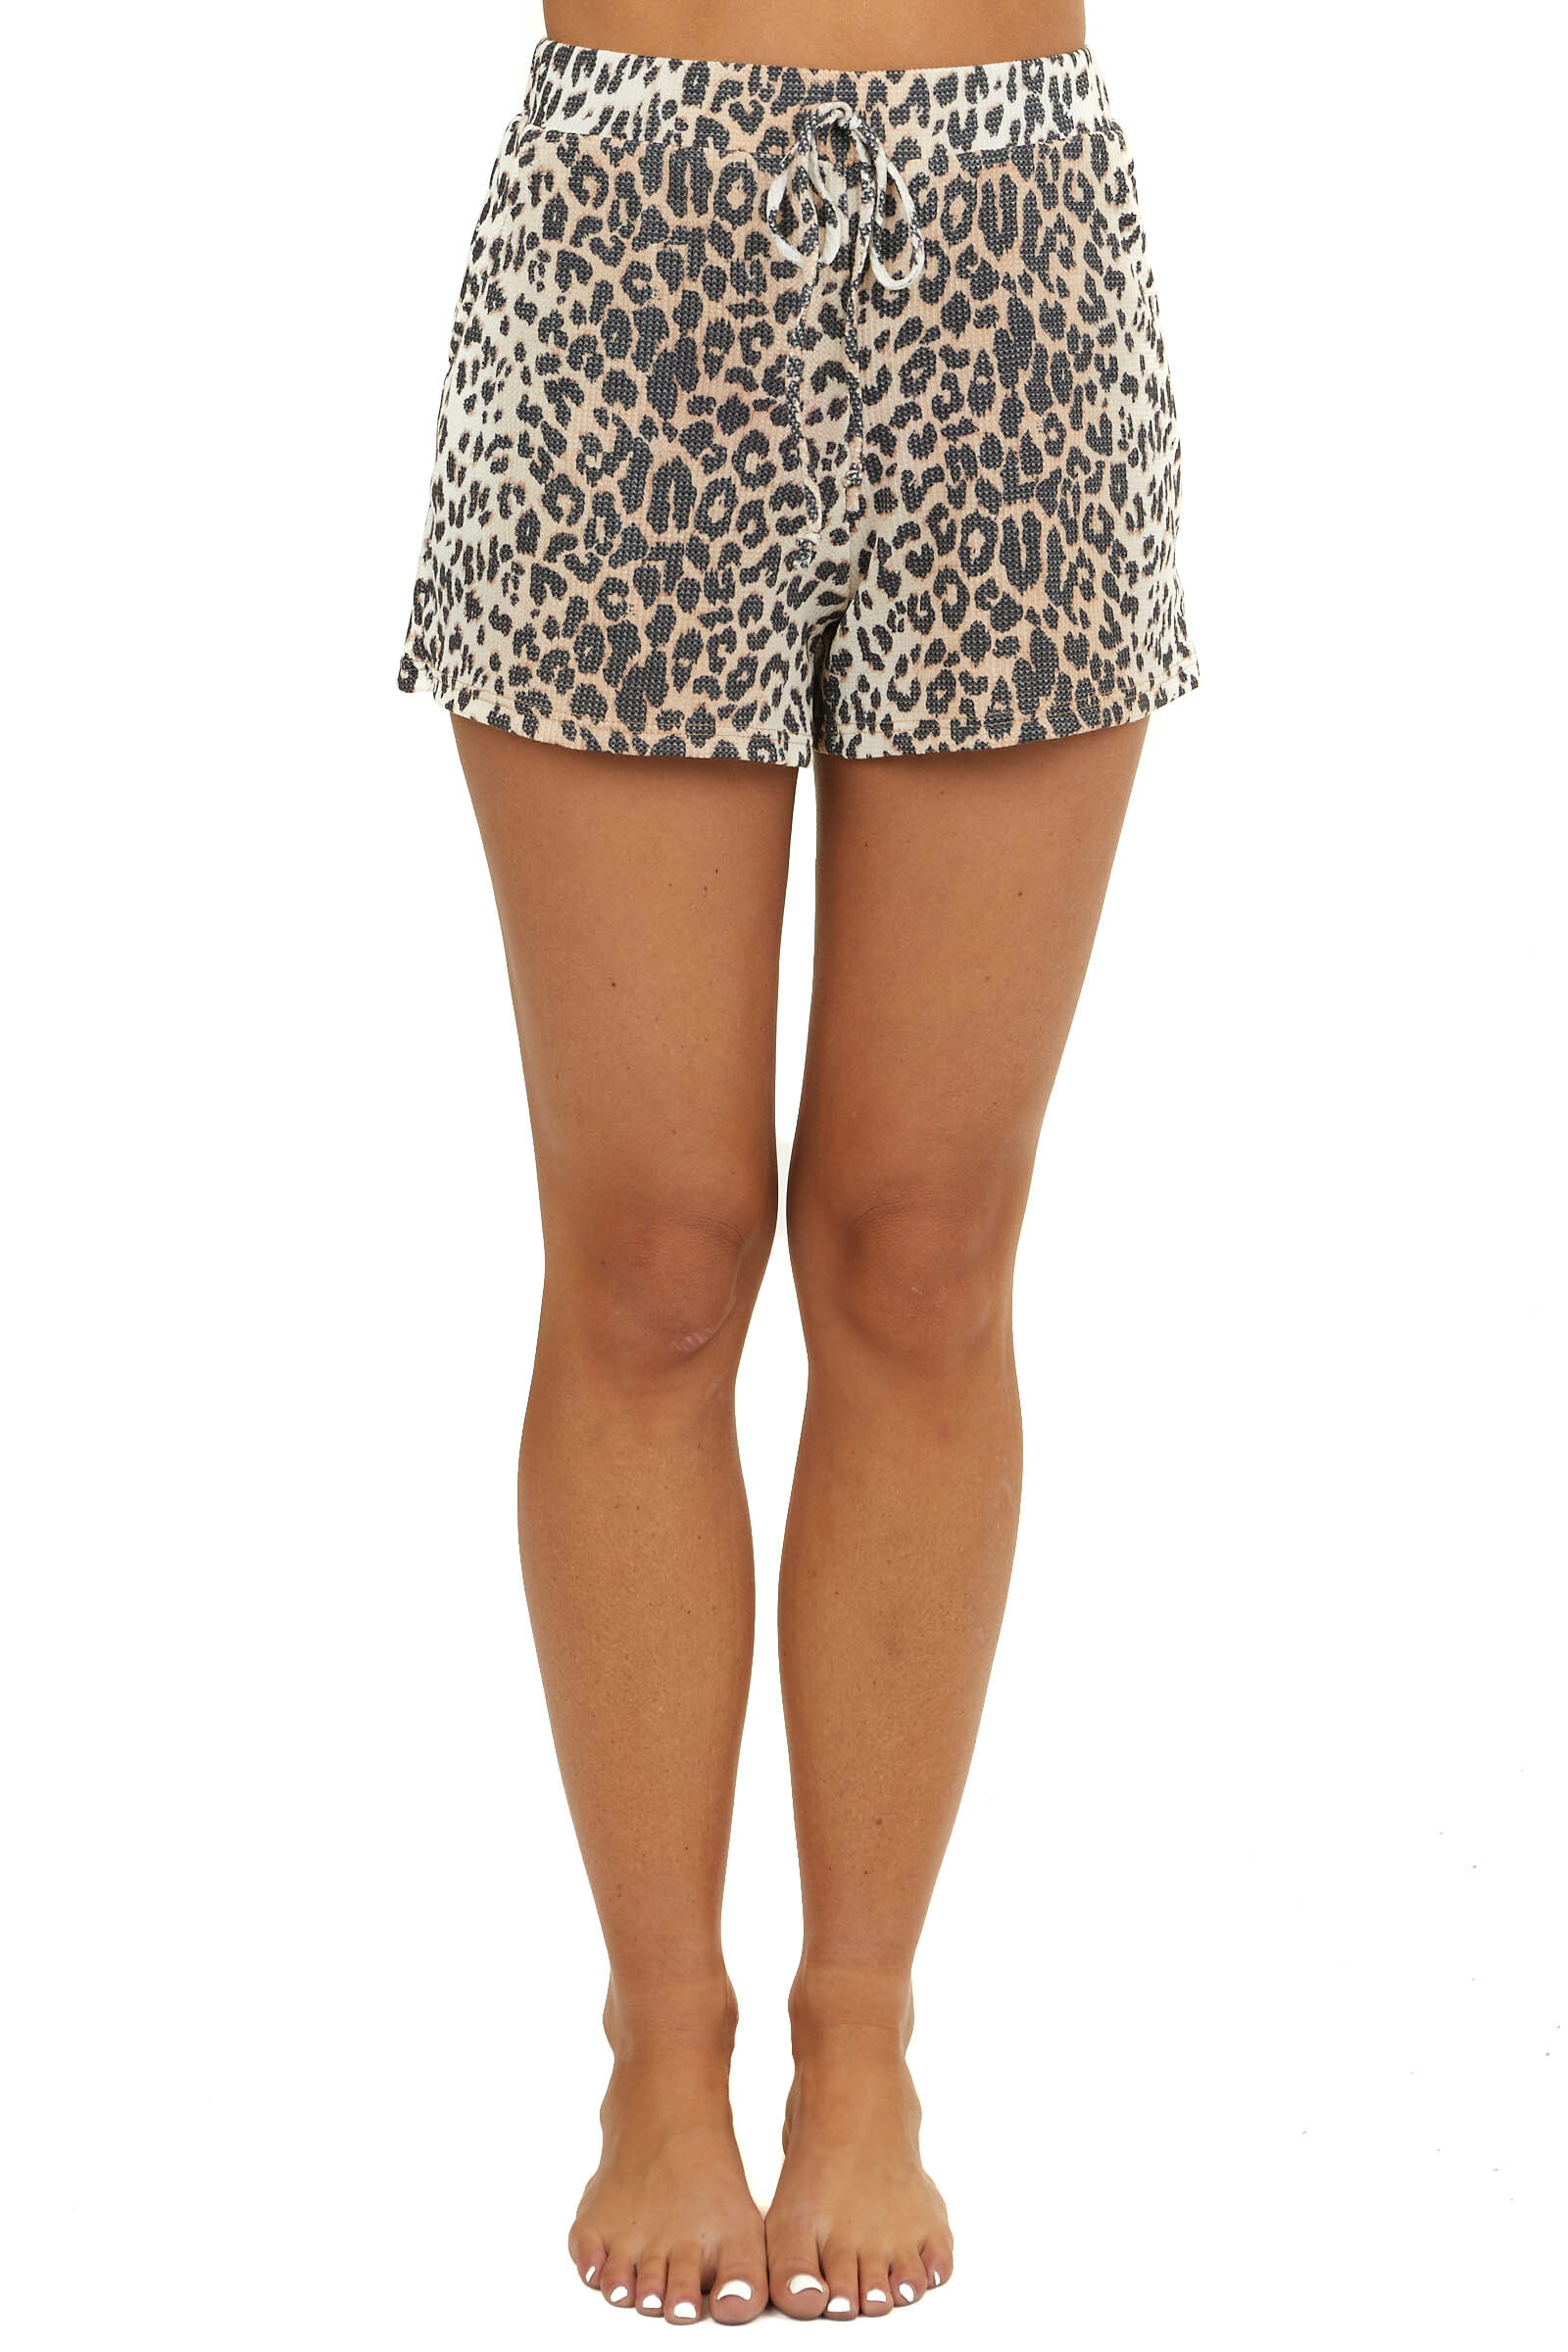 Beige Leopard Print Waffle Knit Shorts with Drawstrings